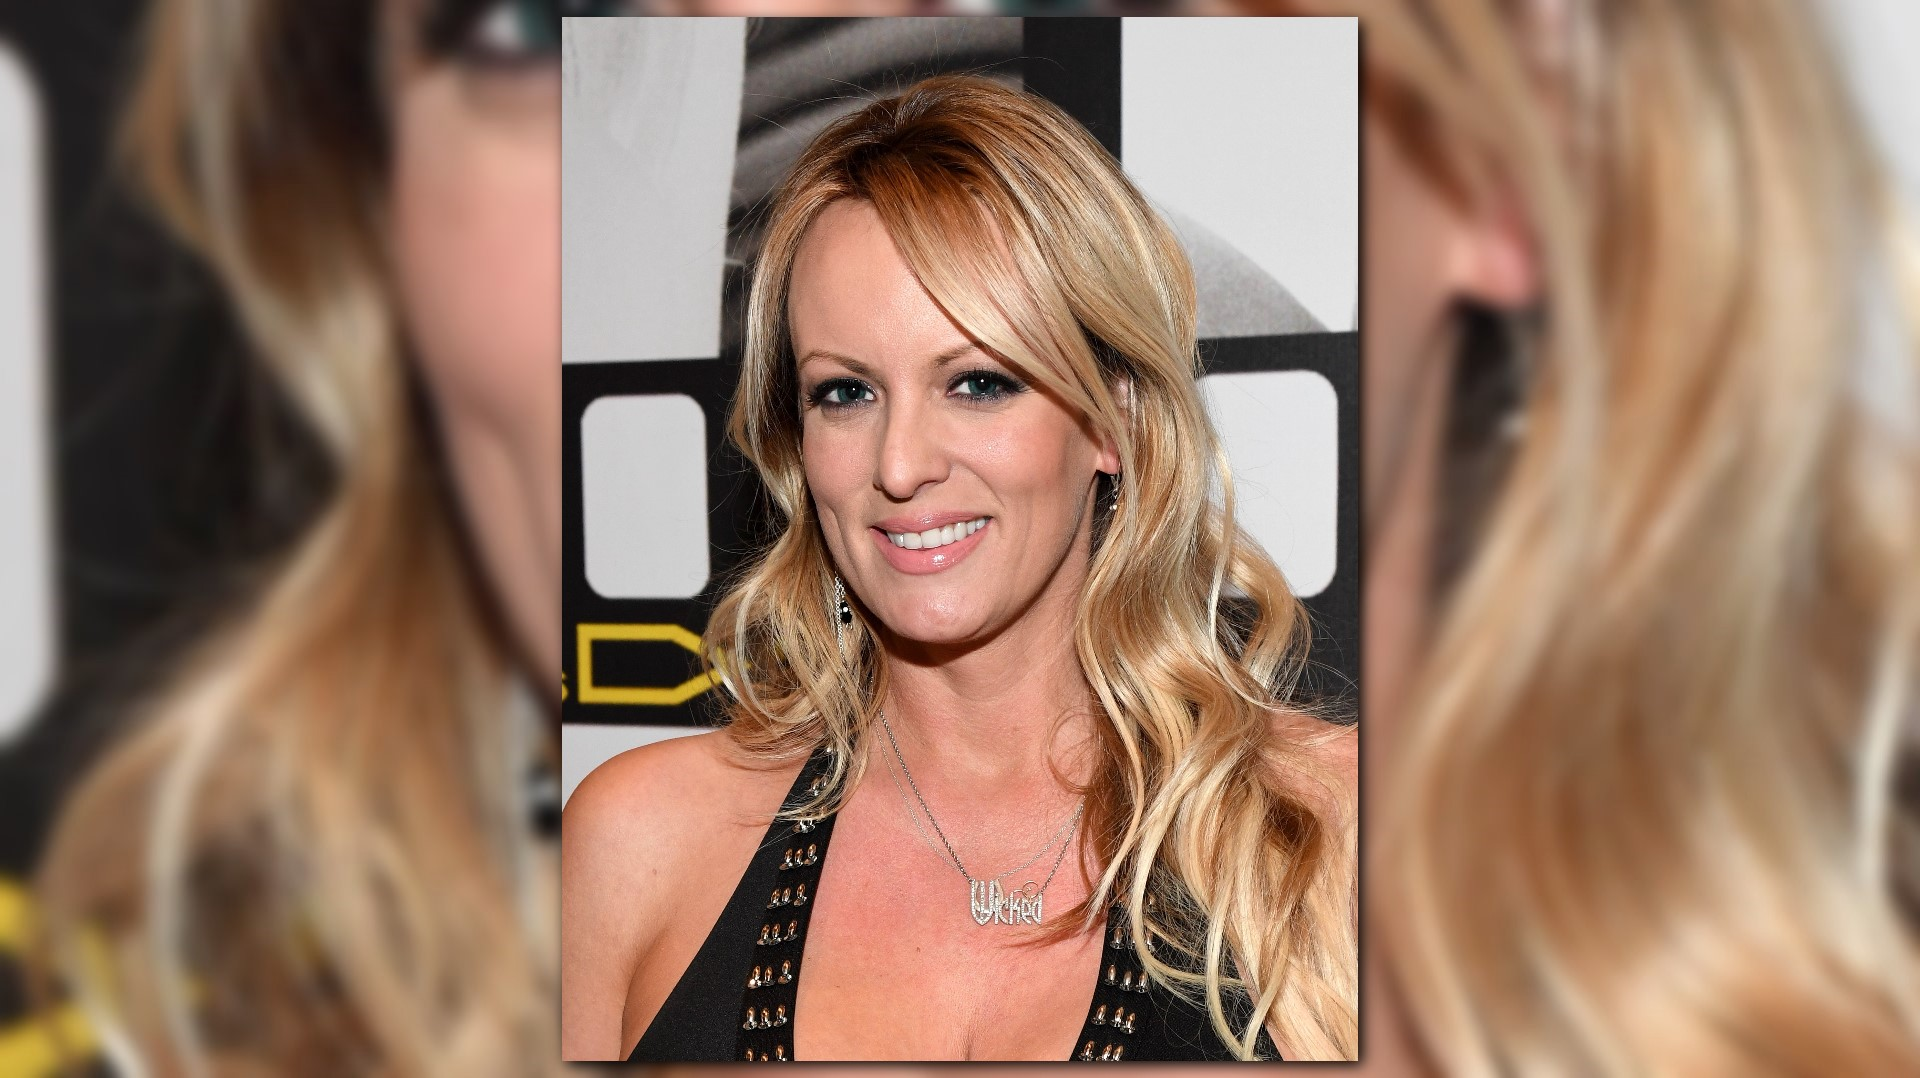 wtsp.com - Porn star Stormy Daniels files lawsuit against Trump, alleging 'hush' agreement invalidPorn star Stormy Daniels files lawsuit against Trump, alleging 'hush' agreement invalid - 웹